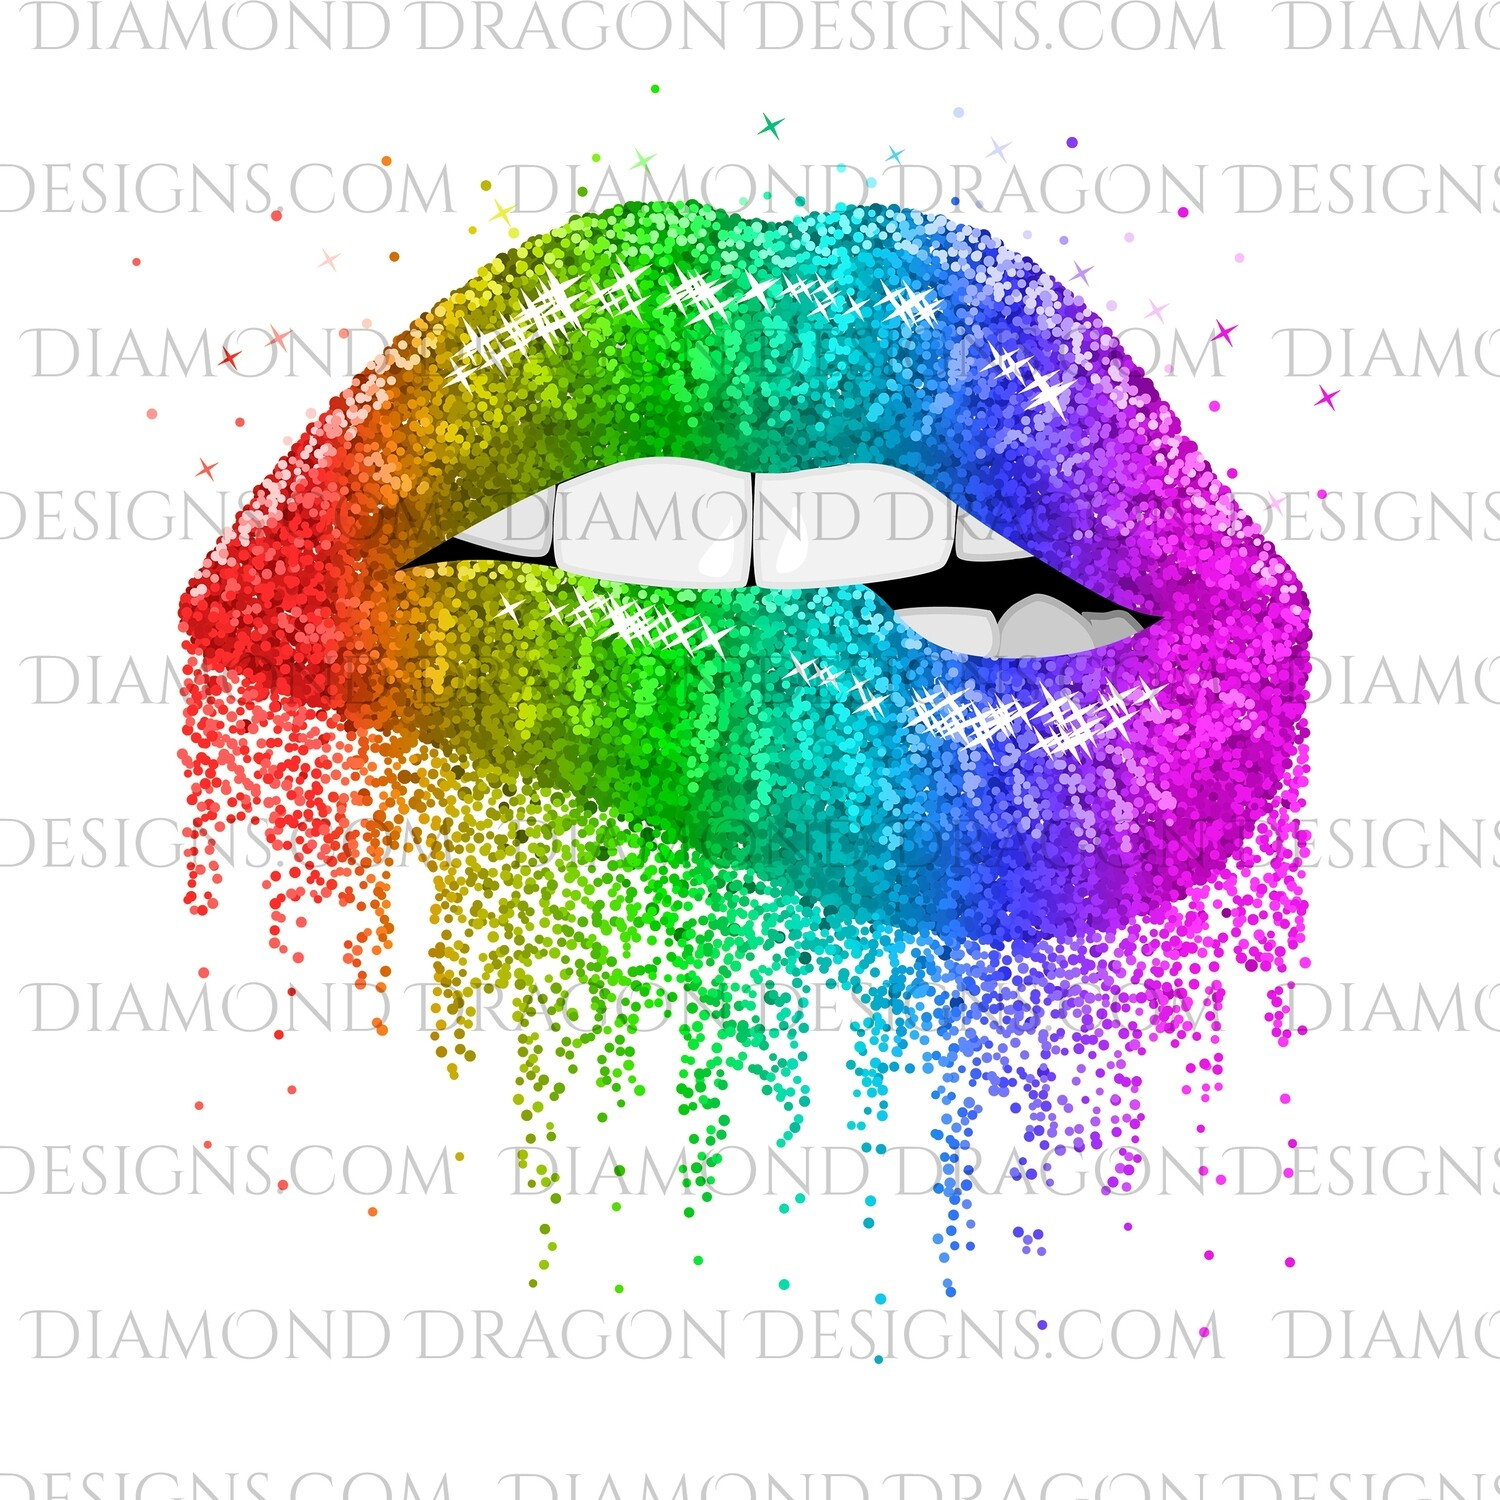 Pride - Rainbow, Dripping, Glitter Lips, Digital Image